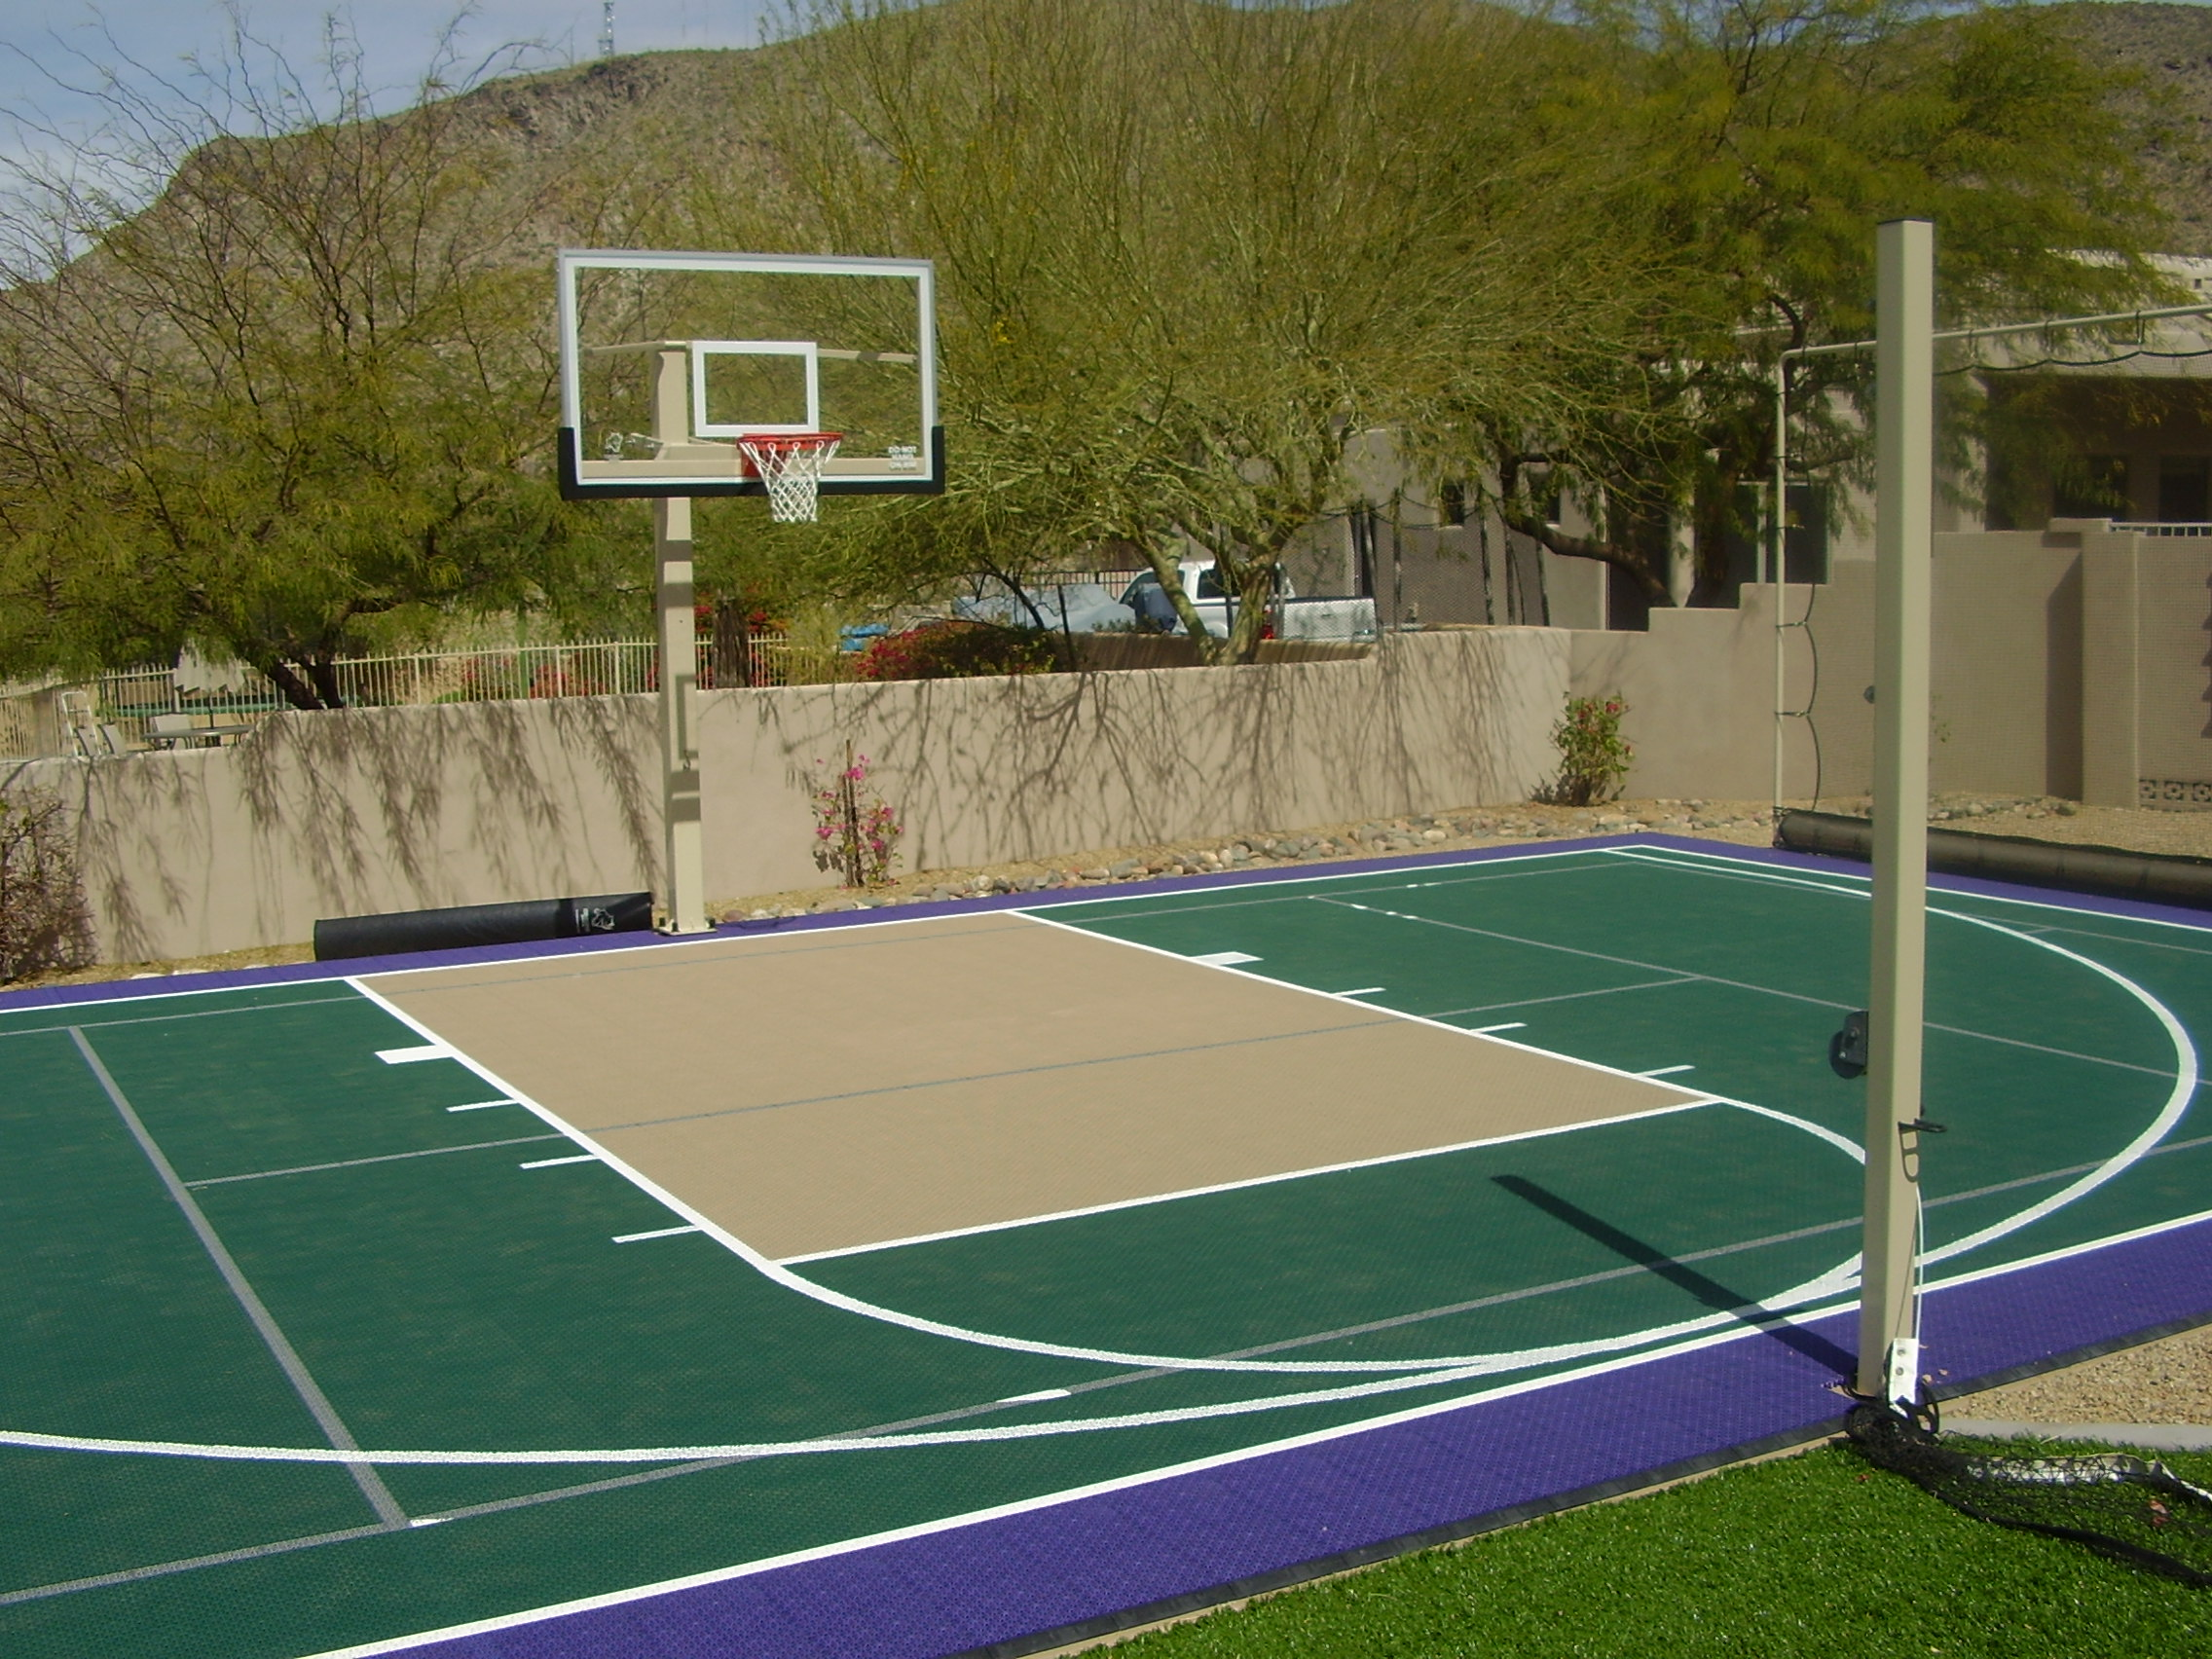 Tims first court 010.jpg